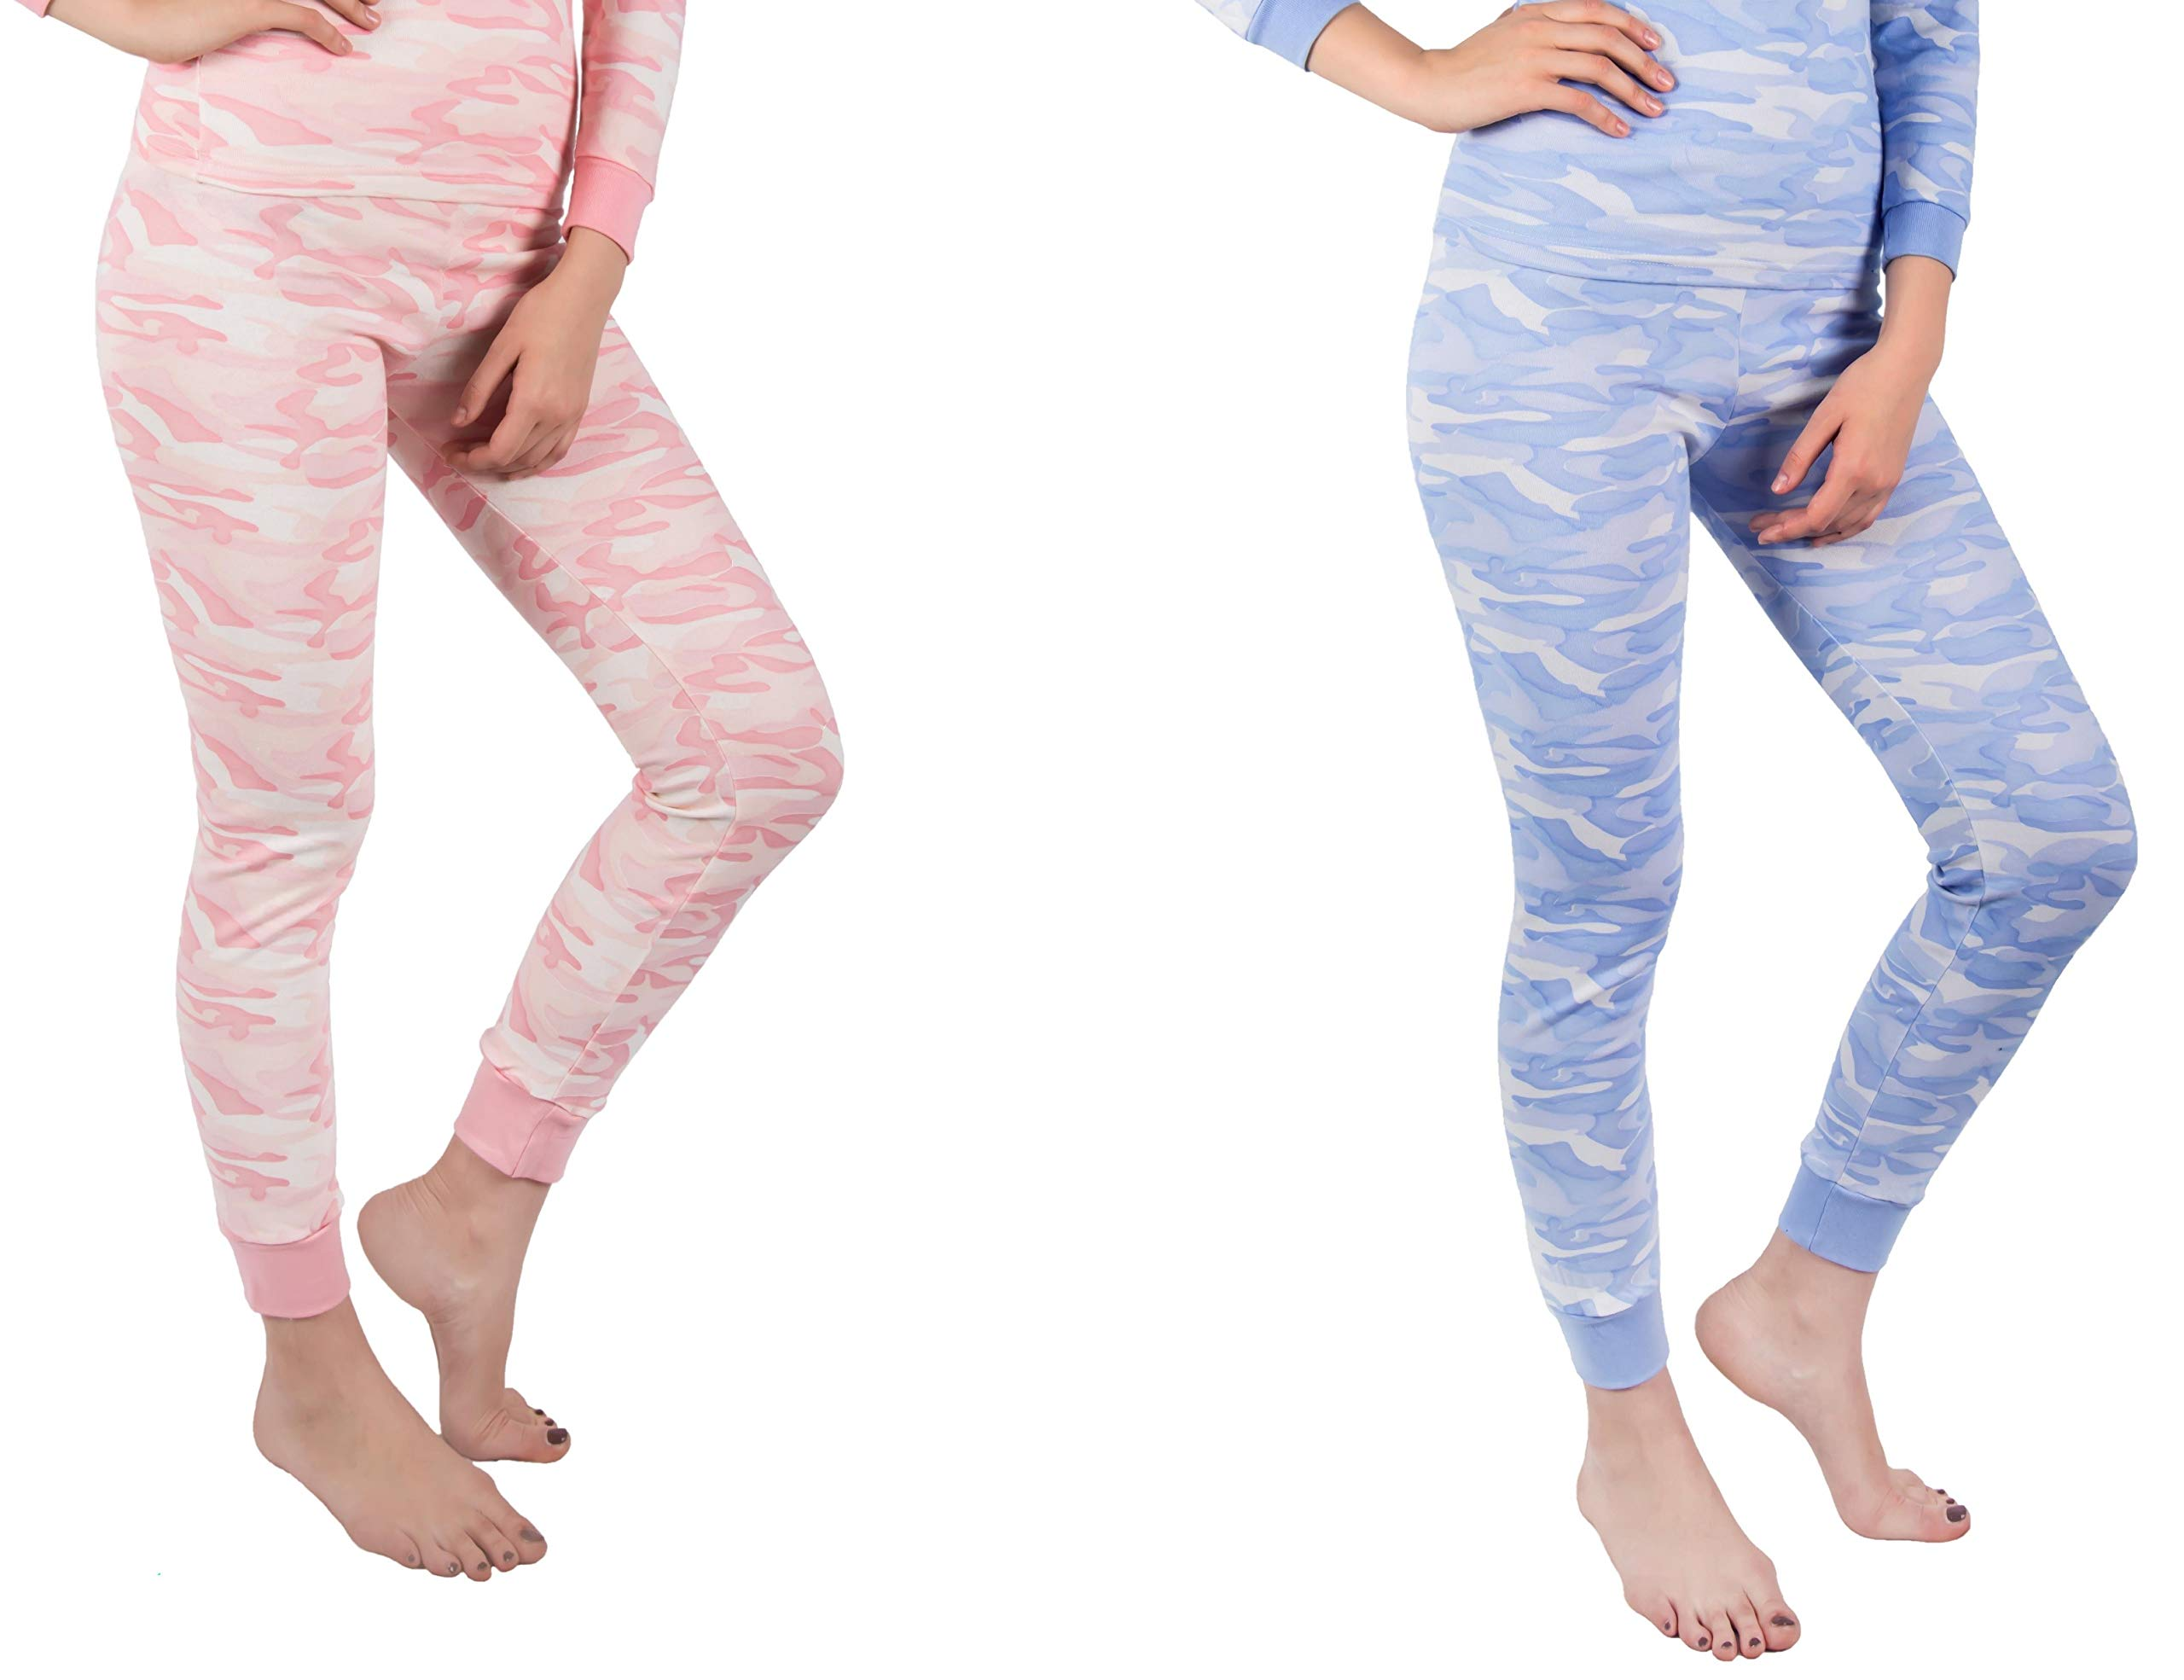 Andrew Scott Women's 2 Pack Long Thermal Fleece Cotton Legging Pants (X-Large, 2 Pack- Pink/Blue Camo Print)